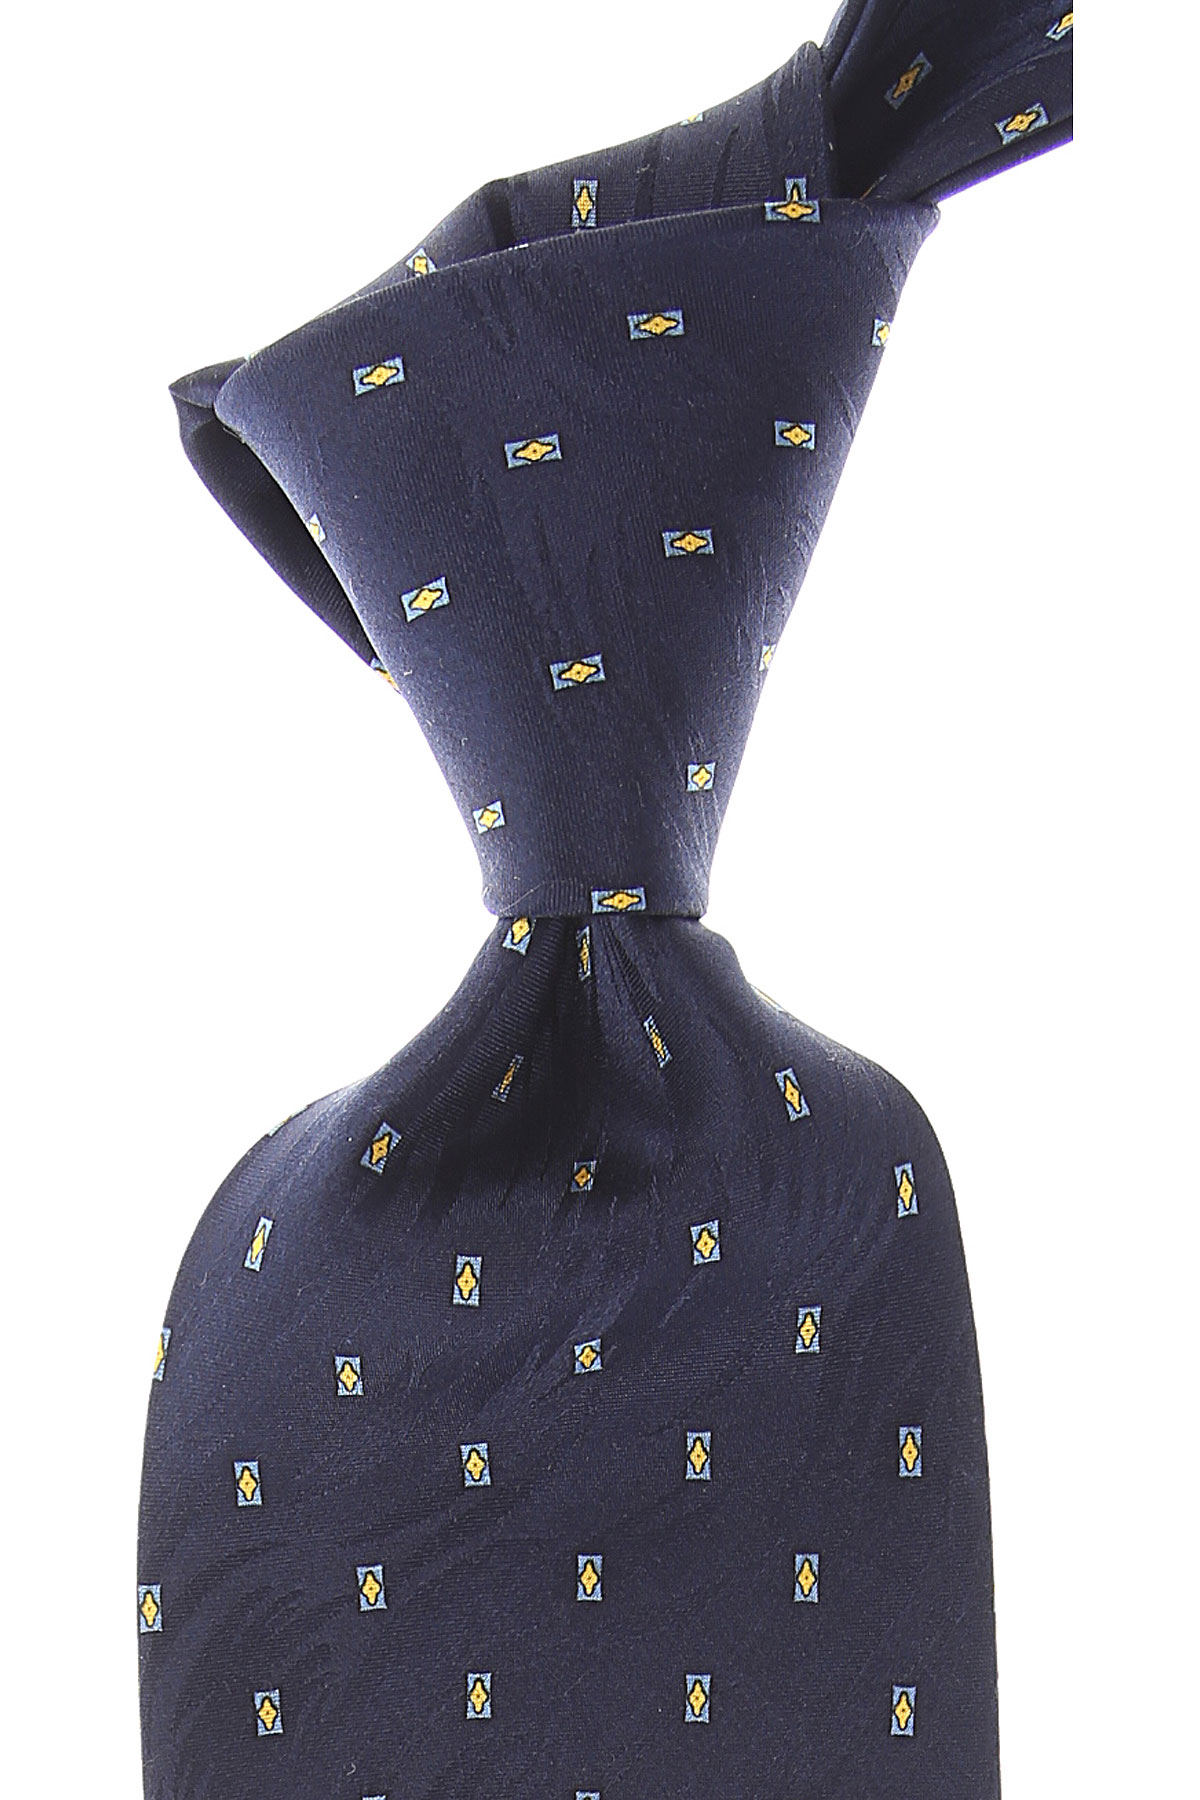 Balmain Ties On Sale, Blue Royal, Silk, 2019